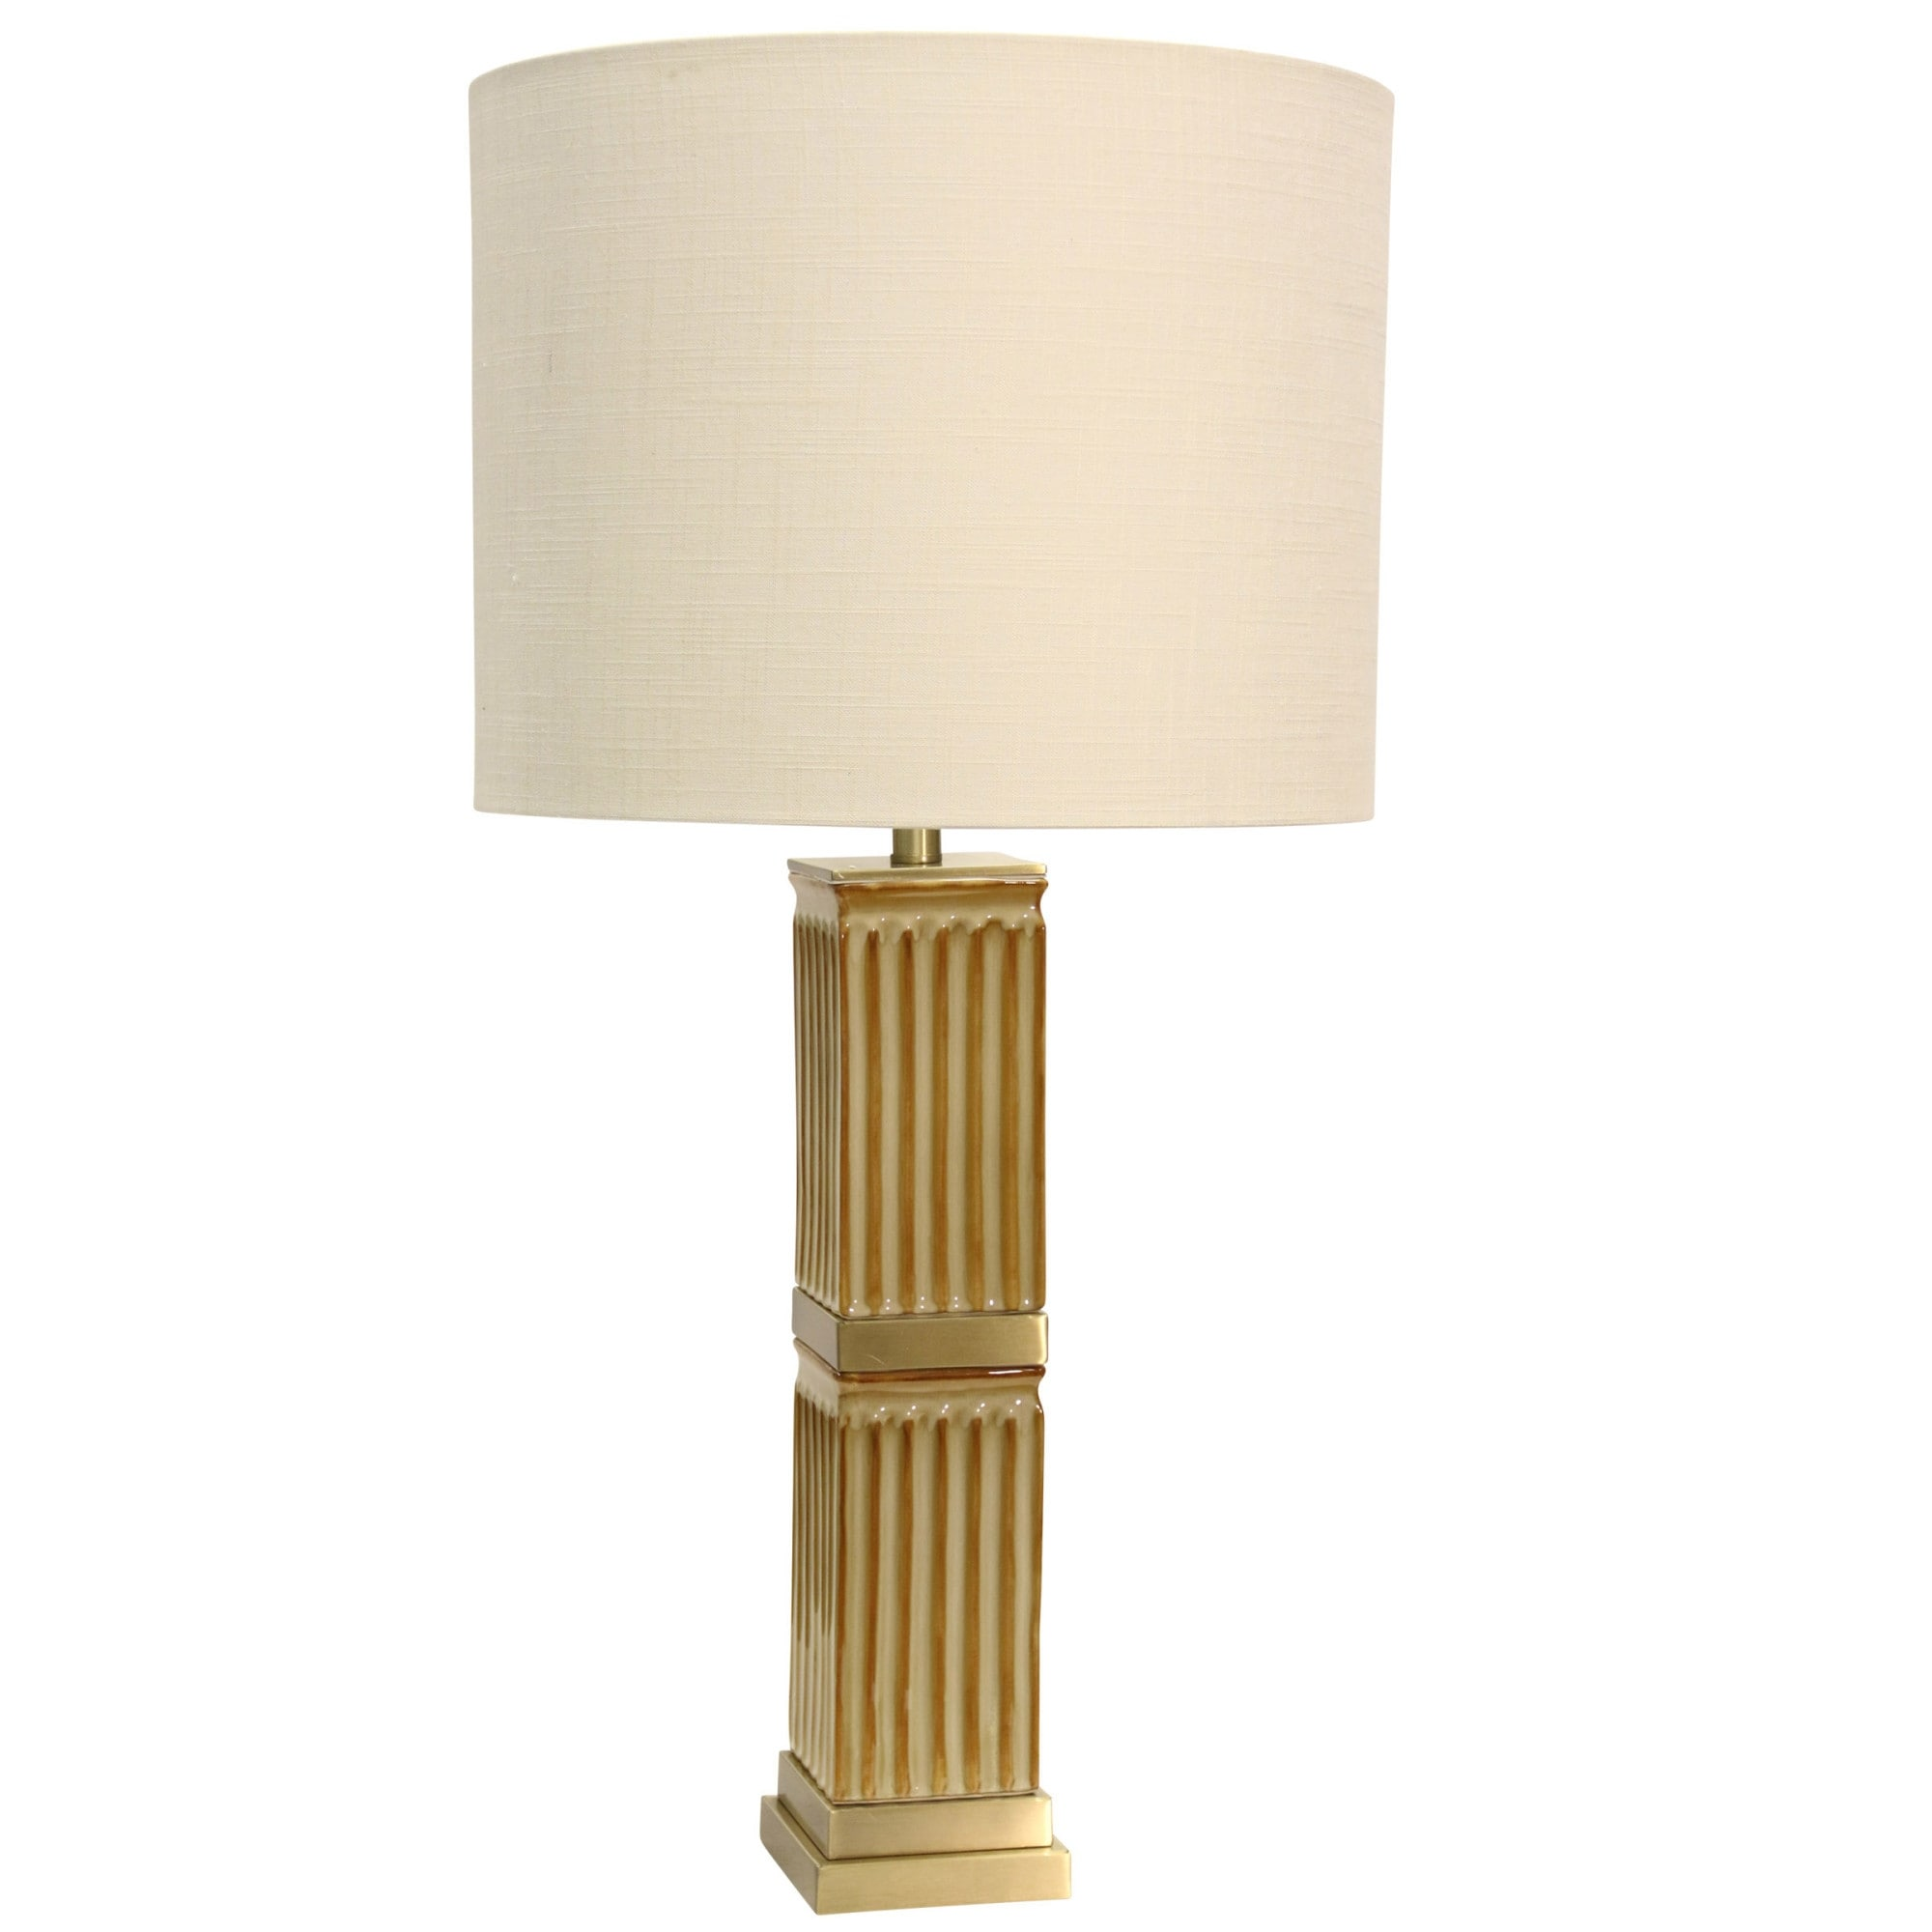 Delacora Sc L313345 Tifton 36 Tall Buffet Table Lamp With Hardback Fabric Shade Beige Overstock 25653937